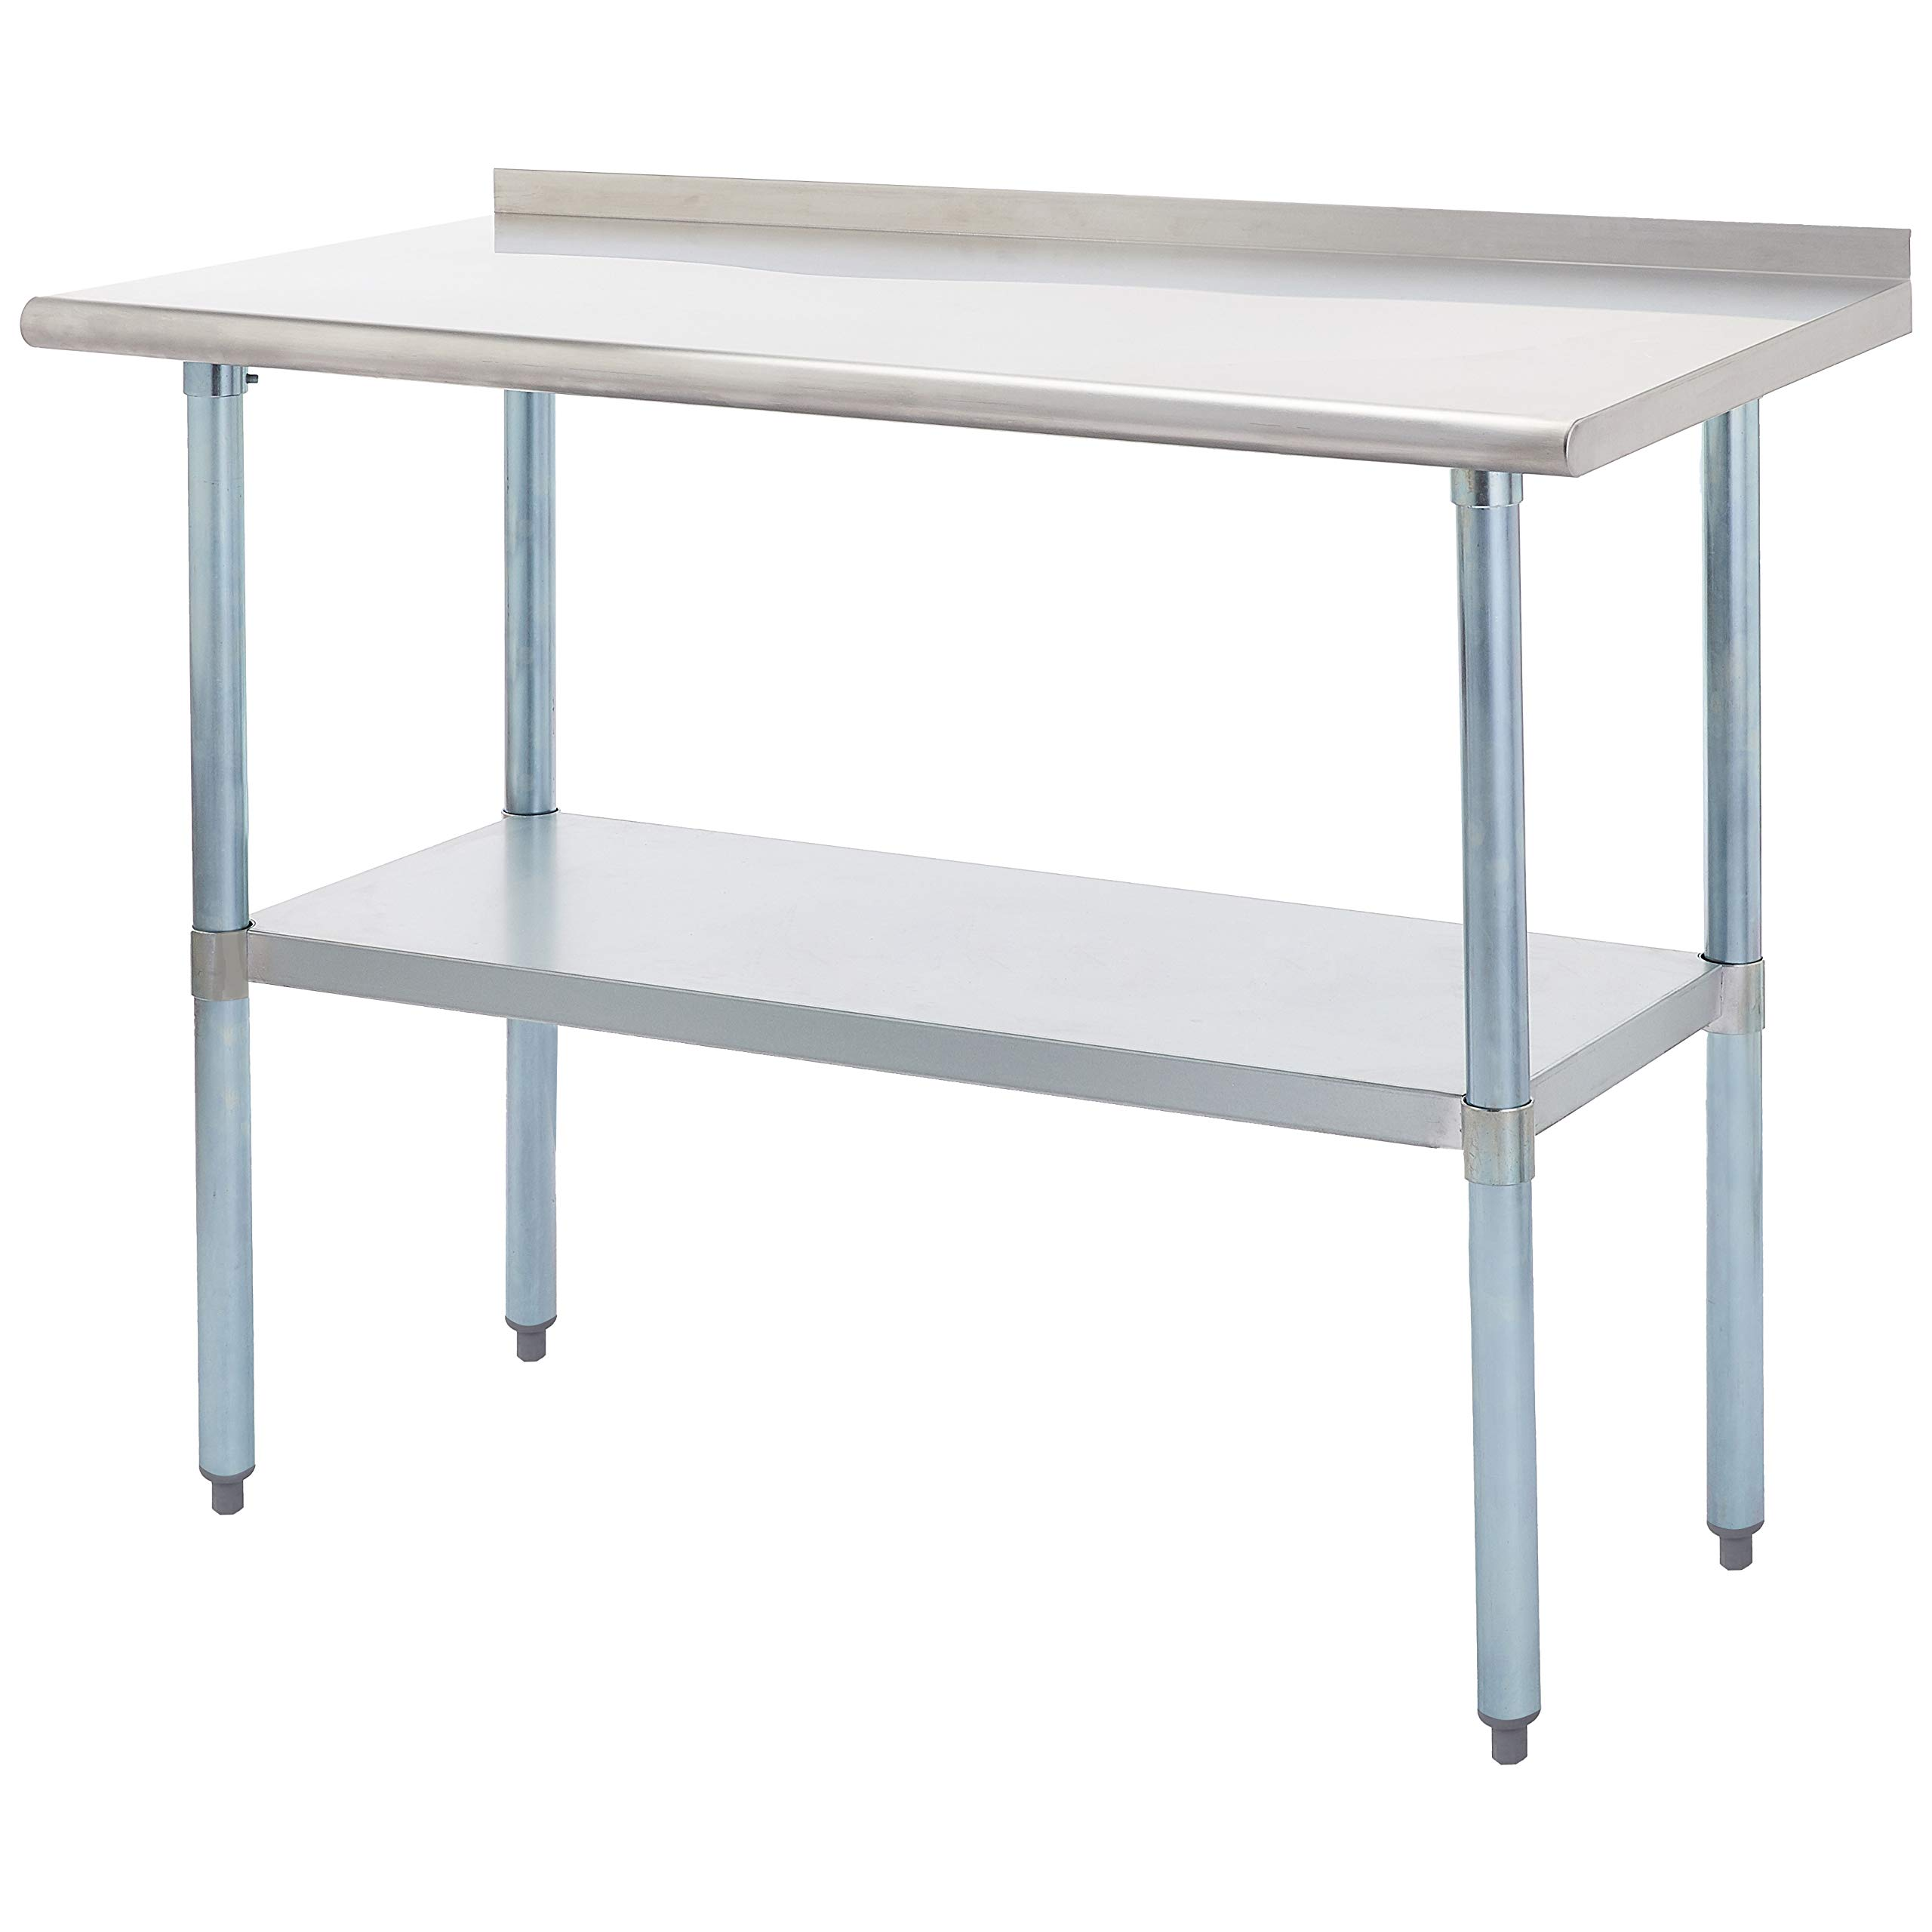 Rockpoint Carmona Tall NSF Stainless-Steel Commercial Kitchen Work Table with Backsplash and Adjustable Shelf, 48 x 24 Inch by ROCKPOINT